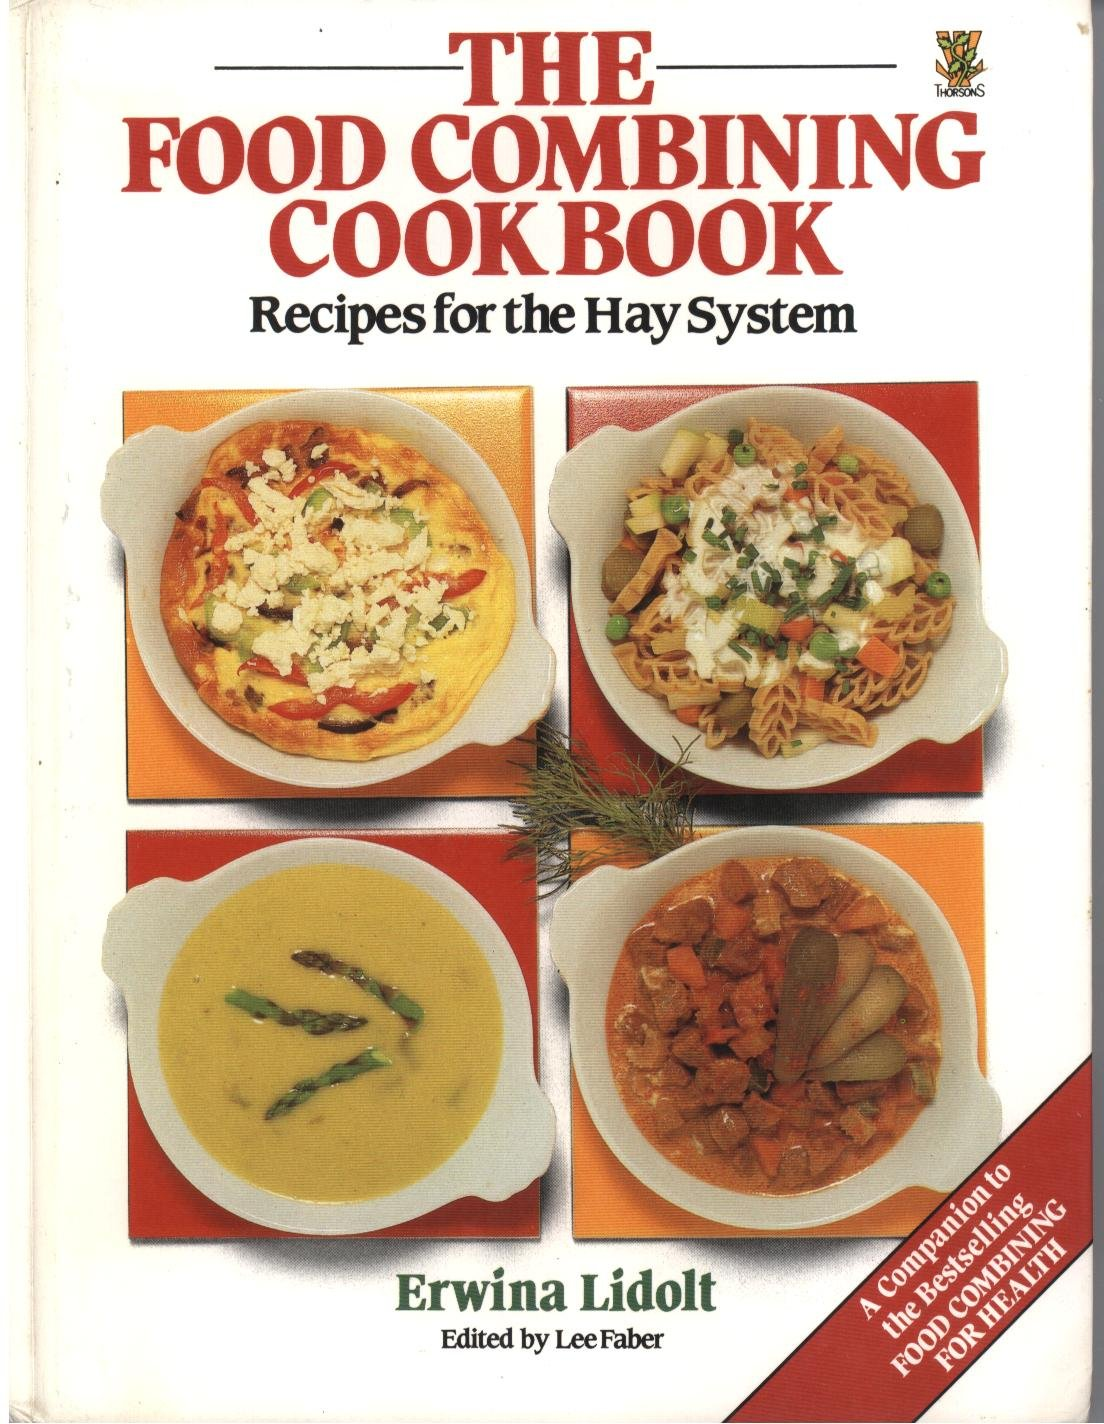 The food combining cookbook recipes for the hay system the food combining cookbook recipes for the hay system 9780722515006 amazon books forumfinder Image collections